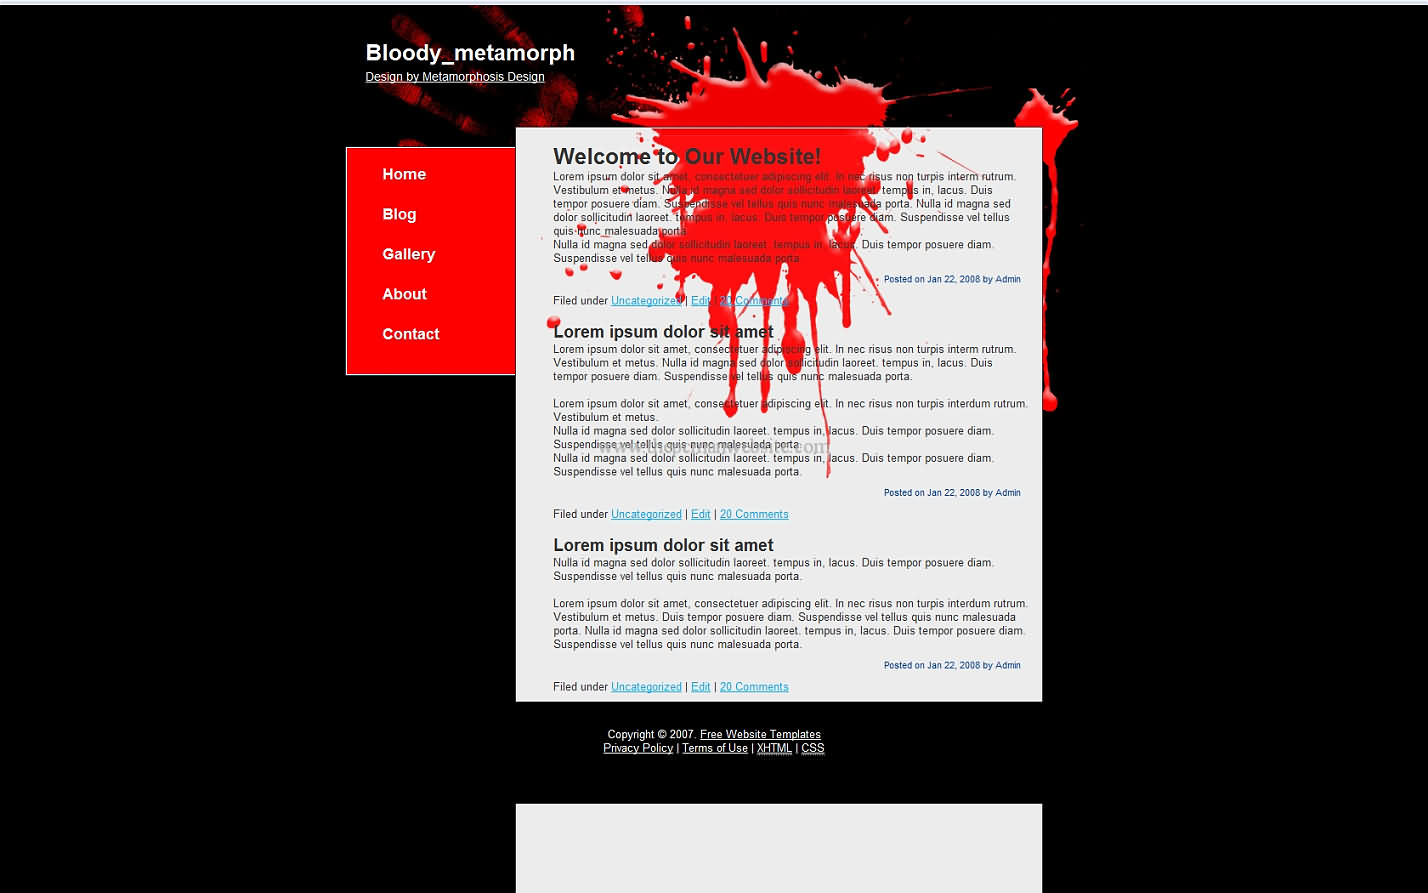 Bloody Metamorph css template